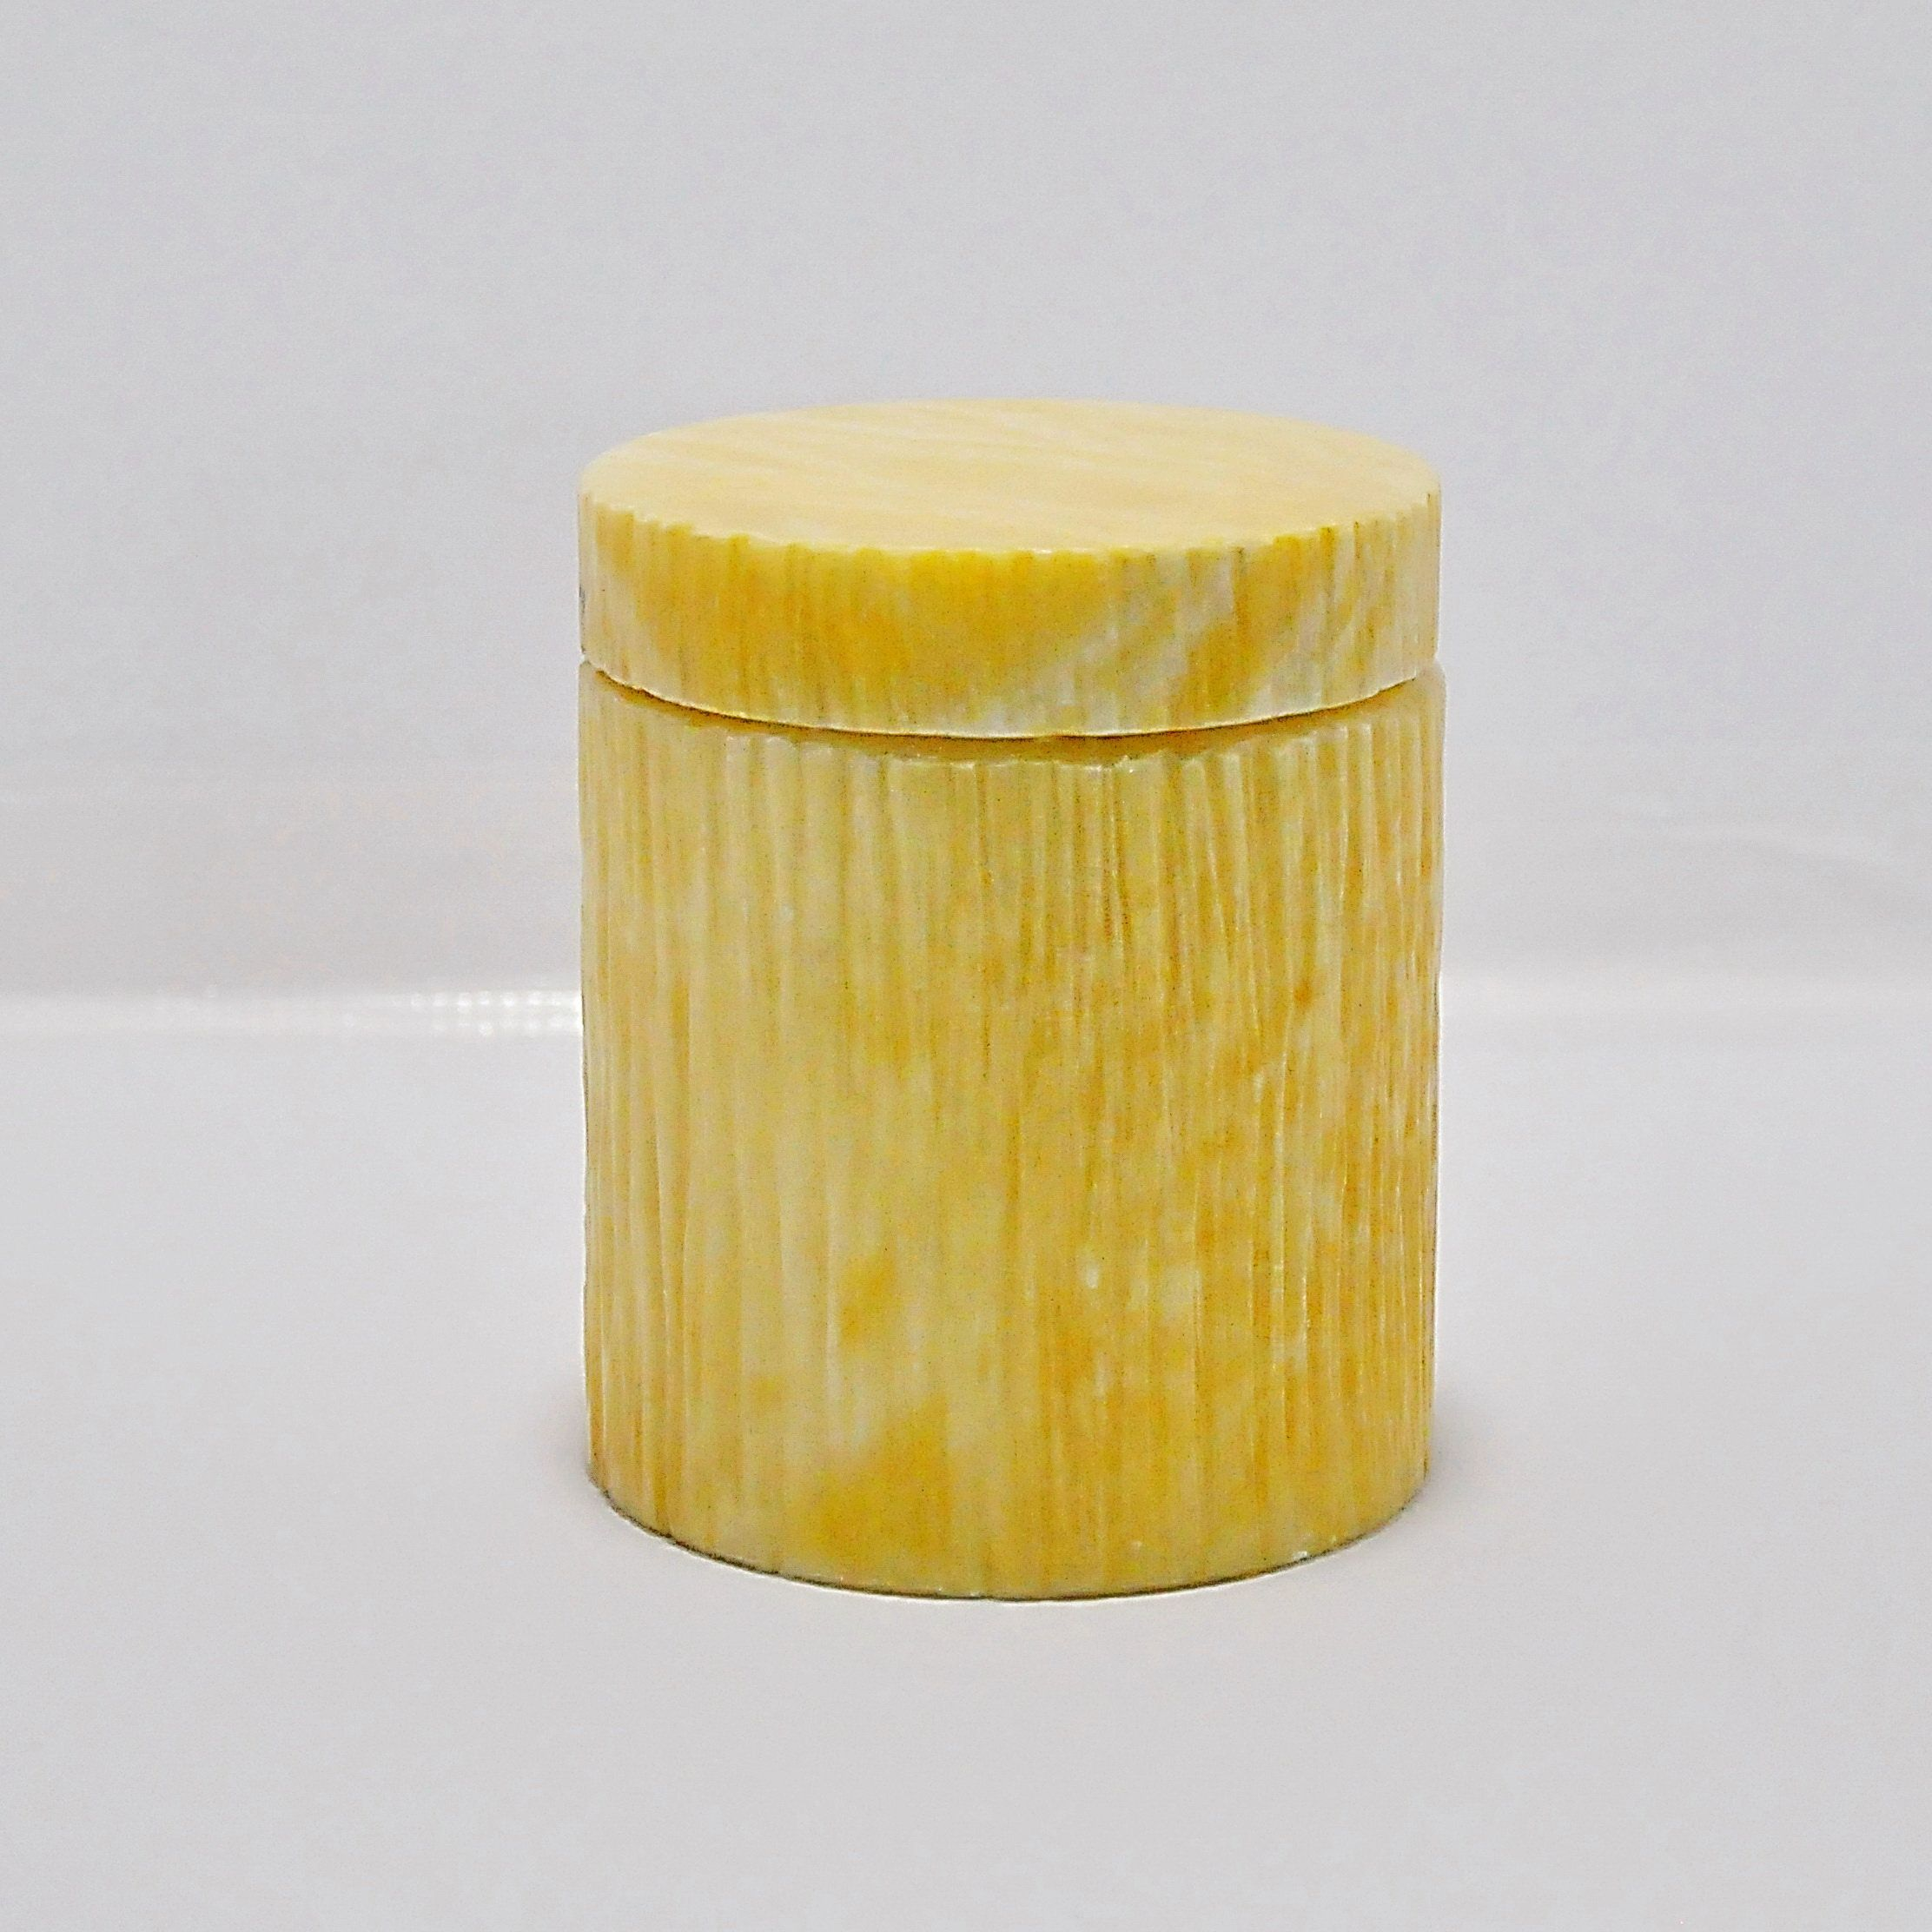 Round Yellow Alabaster Marble Vintage Humidor Container Jar